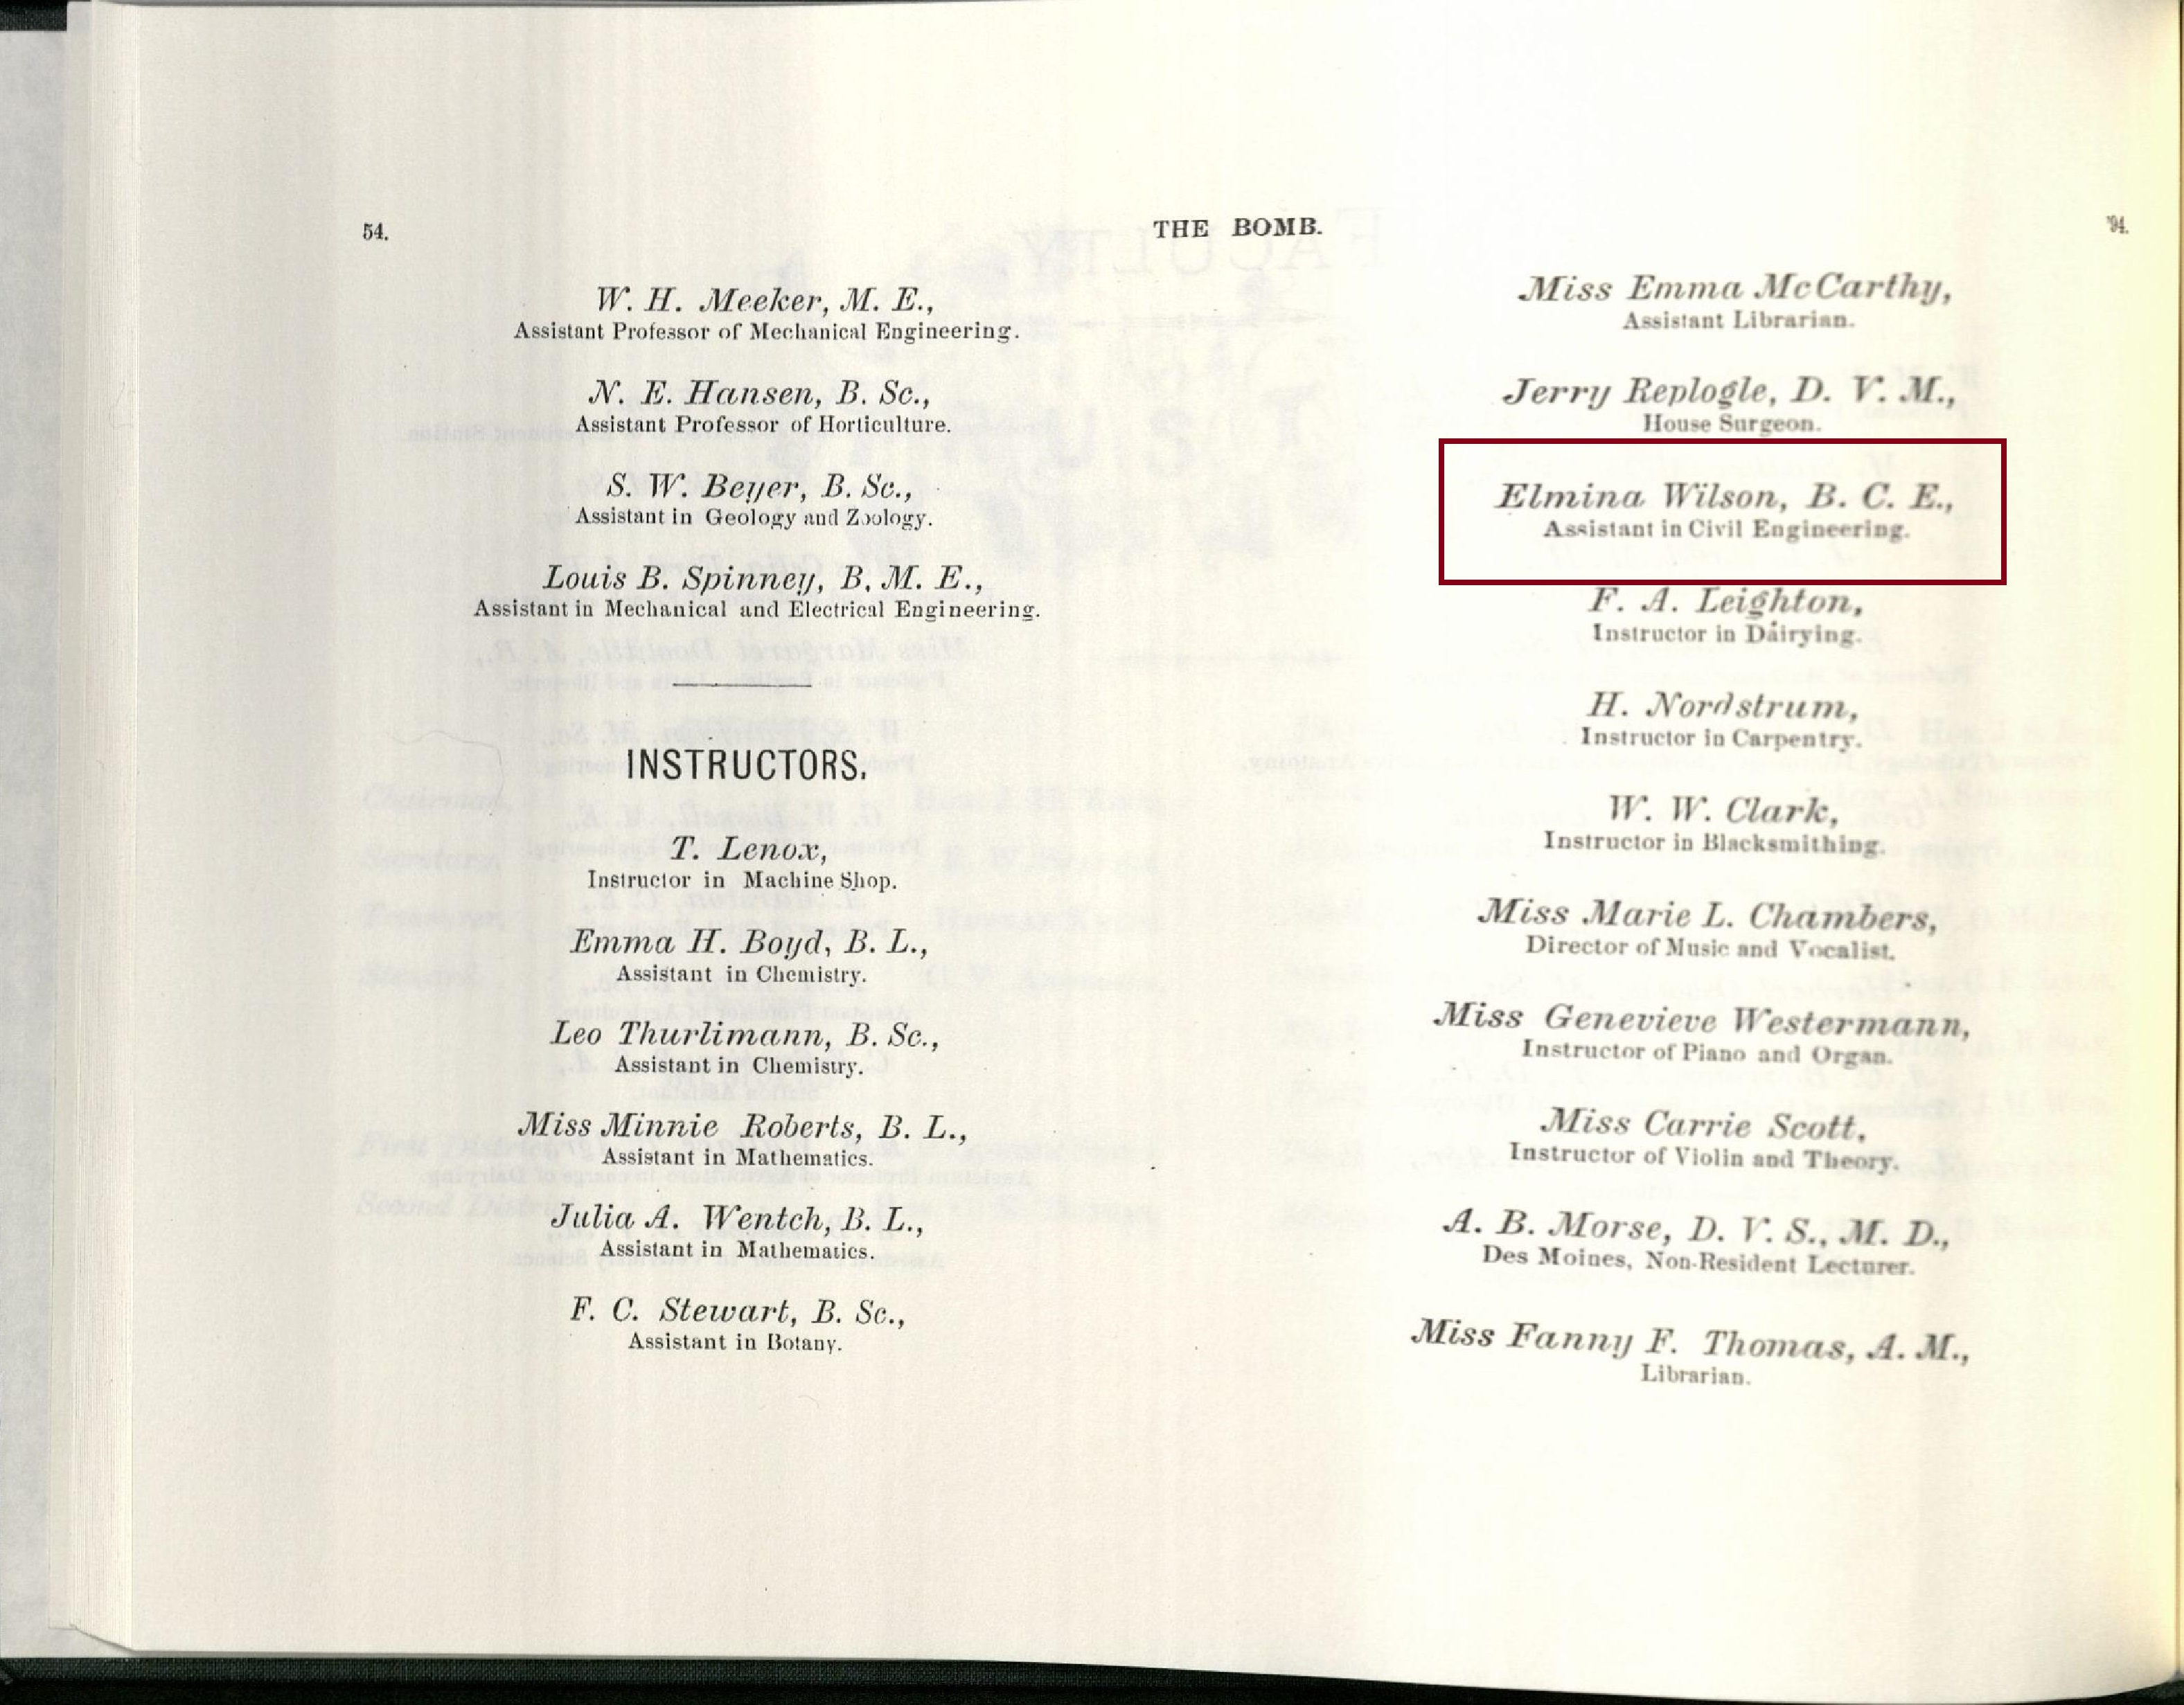 1894 Bomb yearbook, page 54. Elmina is listed as a department instructor even before she had officially graduated with her masters', as she taught while pursuing her graduate degree.